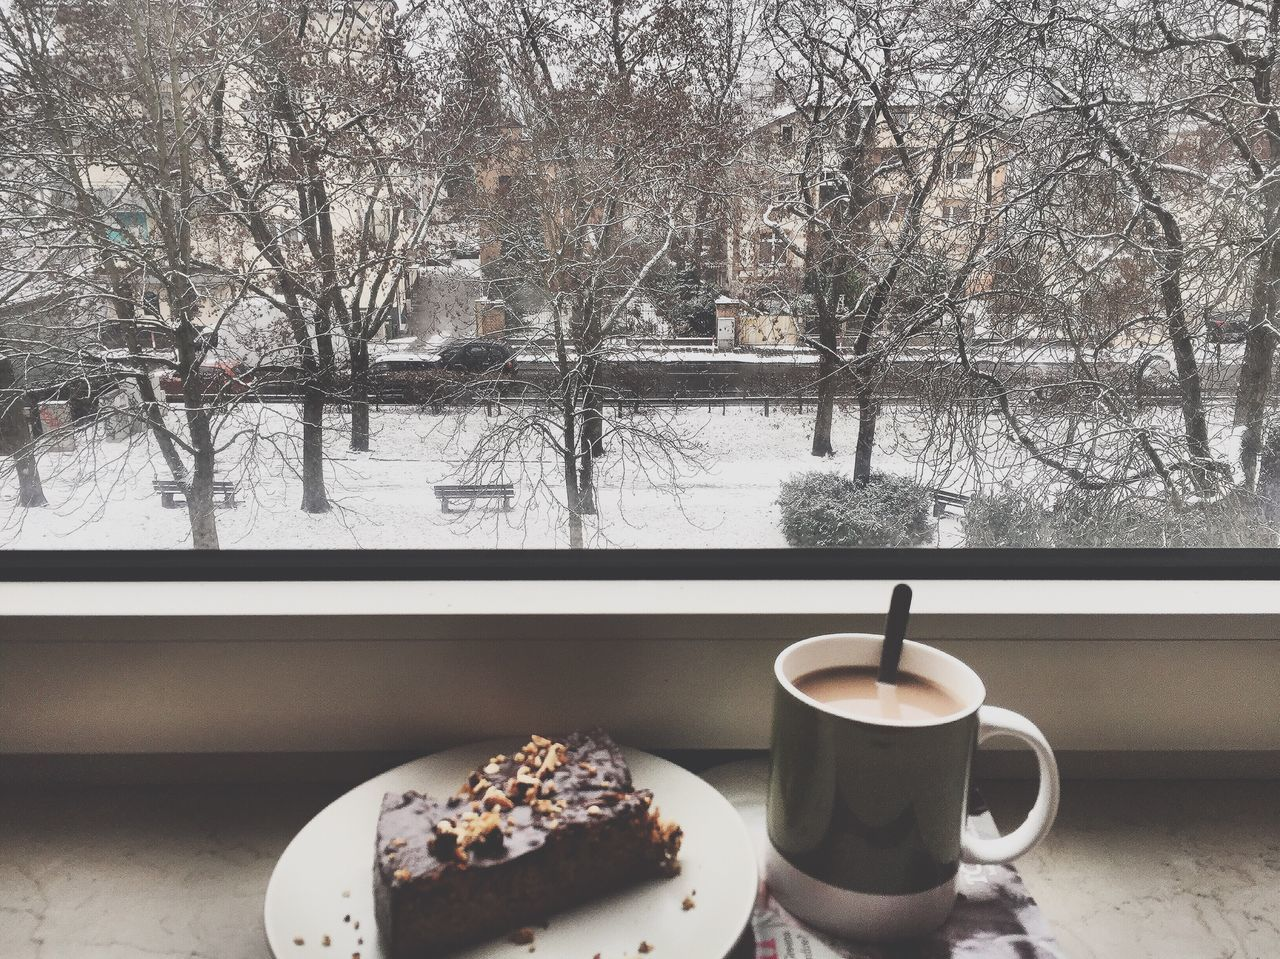 food and drink, freshness, coffee cup, winter, table, coffee - drink, tree, cold temperature, no people, drink, refreshment, food, bare tree, snow, day, indoors, nature, sweet food, ready-to-eat, close-up